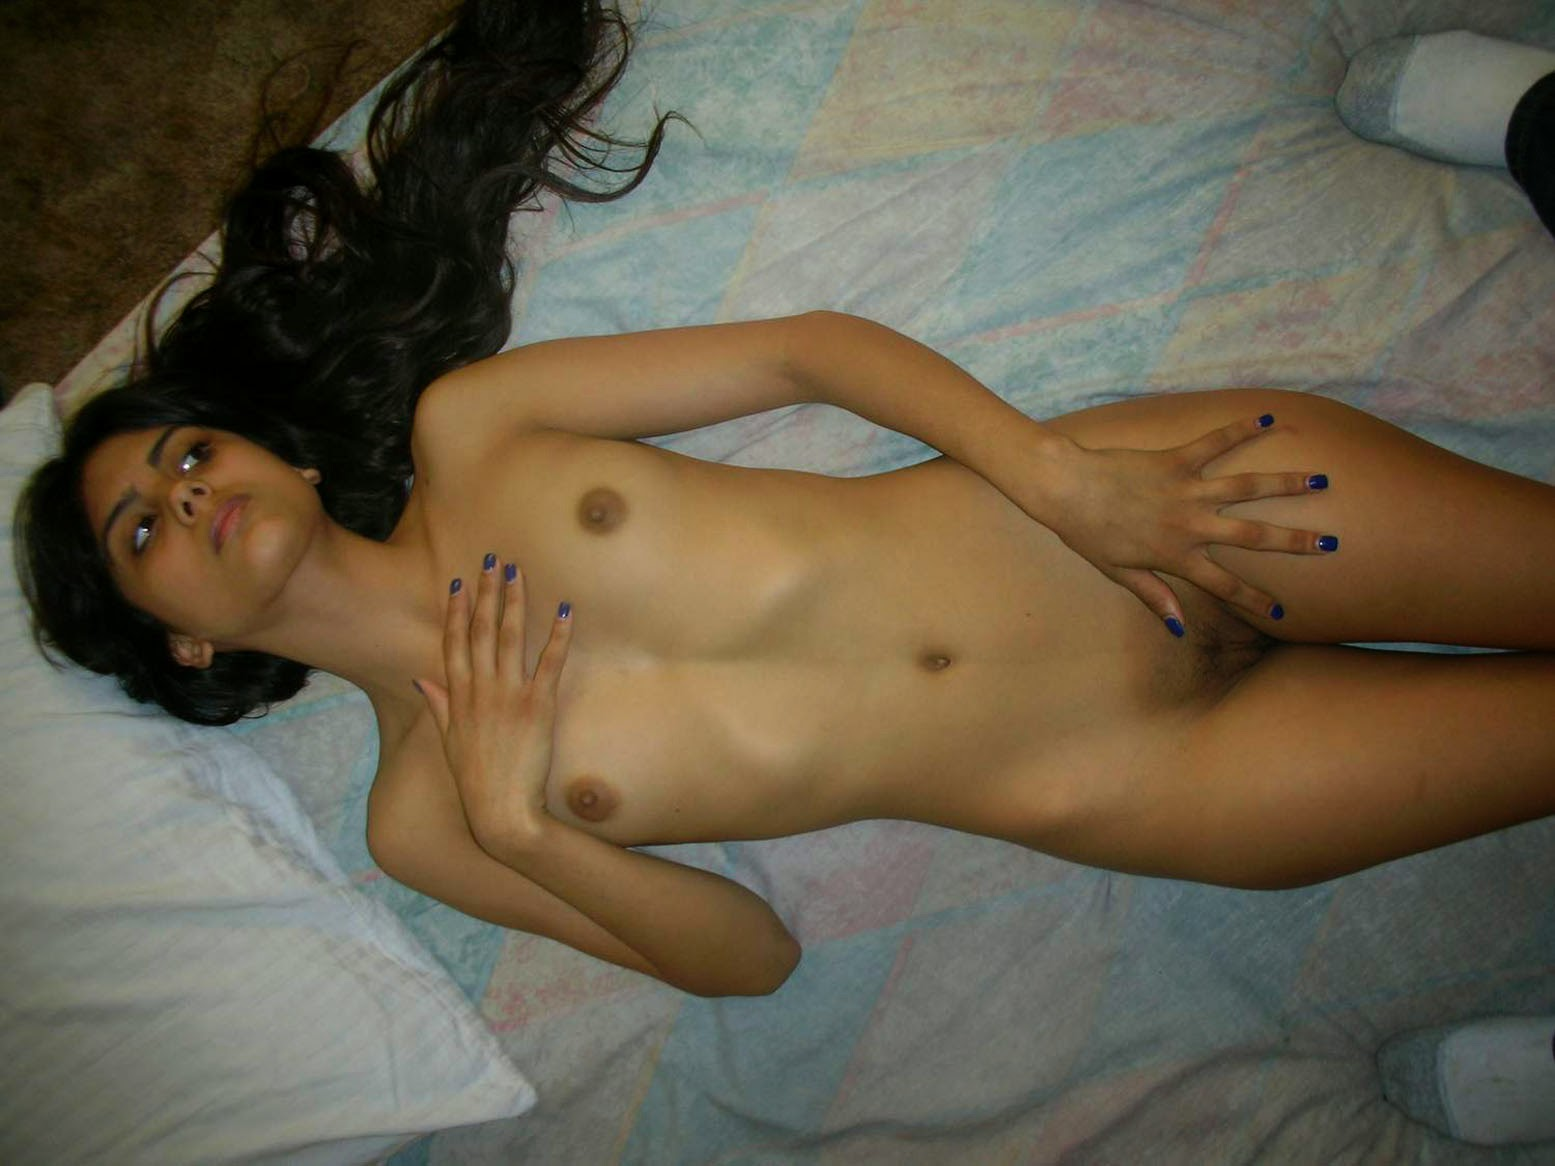 Ex Girlfriends Leaked Nude Pics-9626